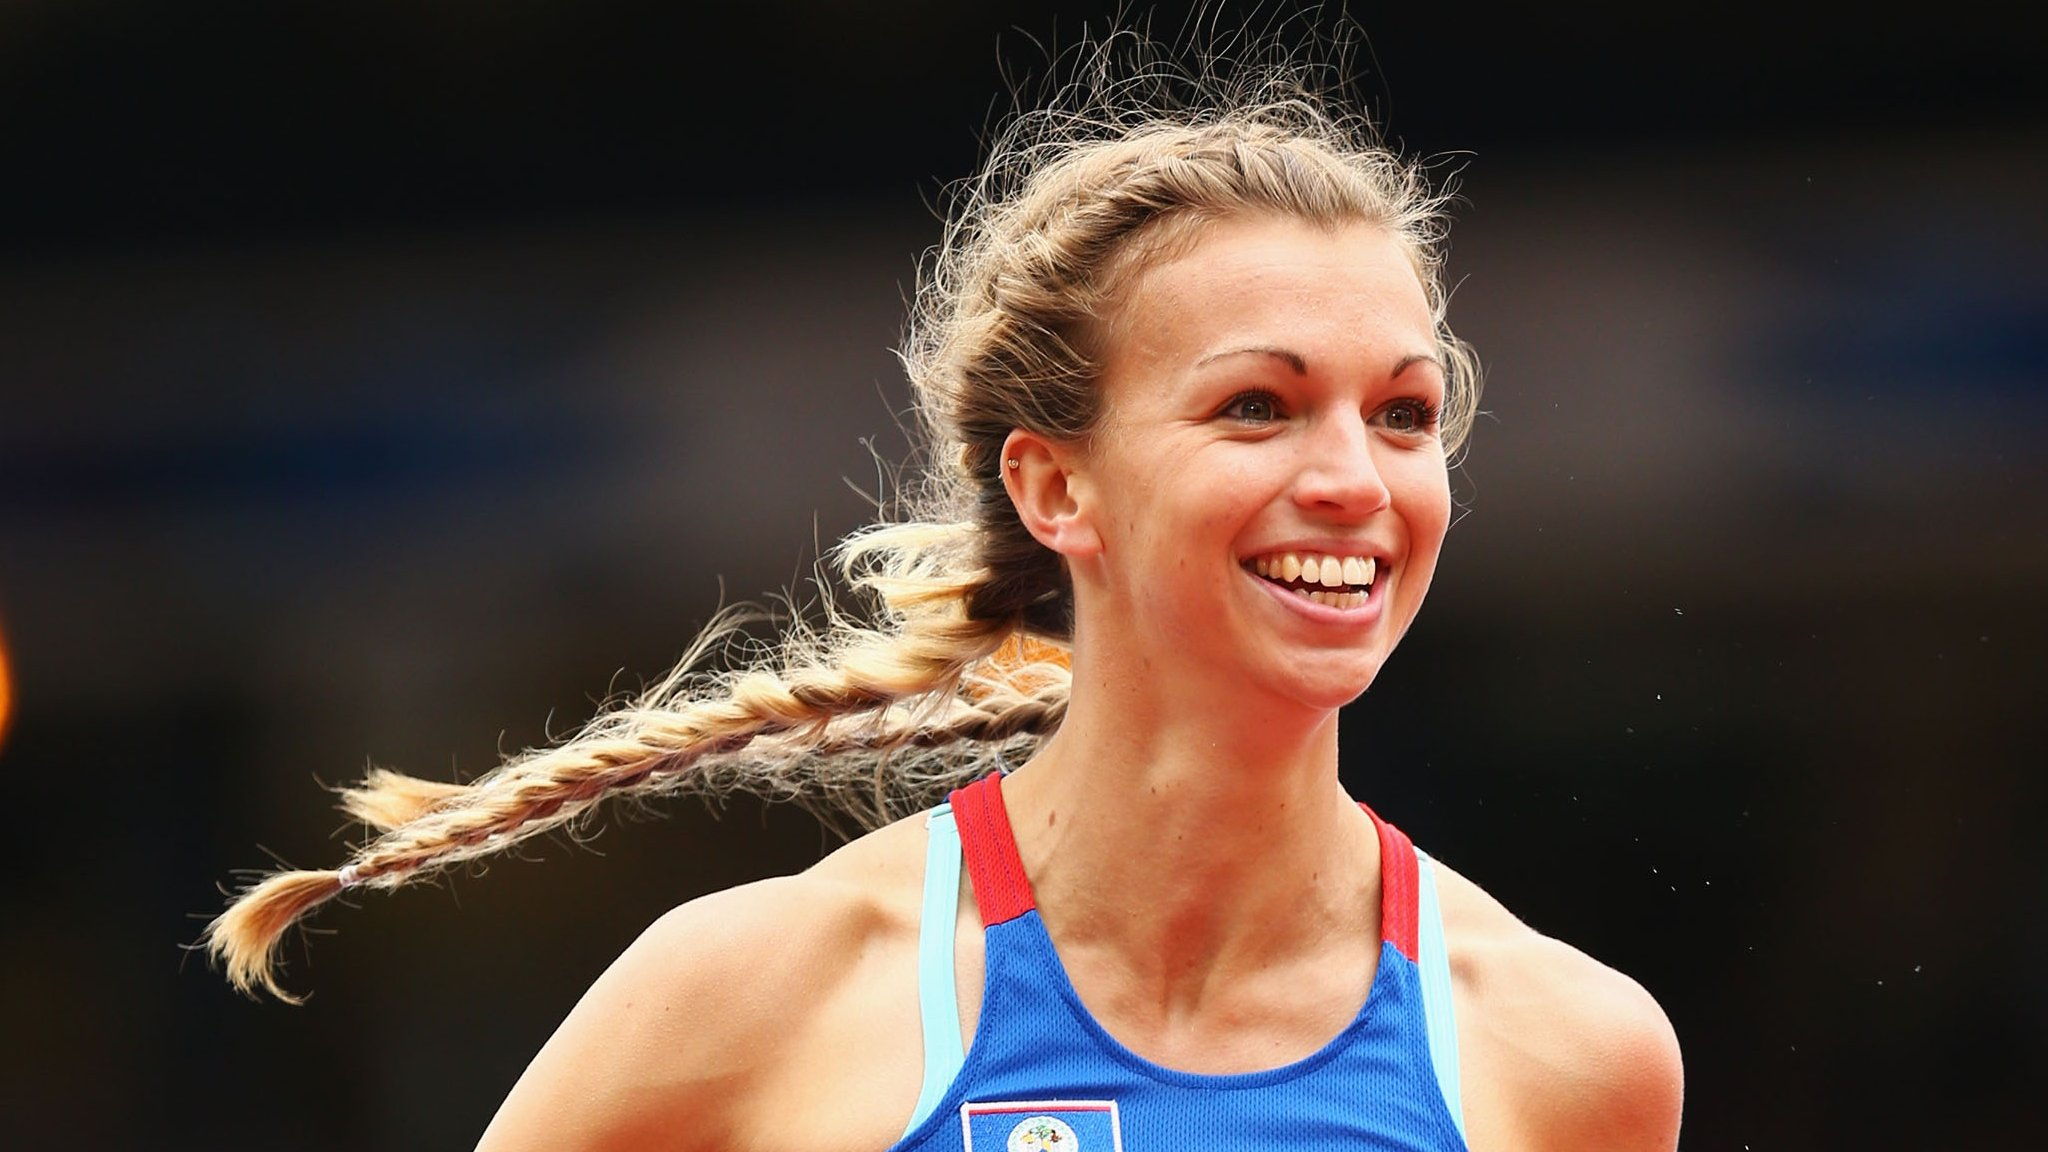 Rio Olympics 2016: Suffolks Katy Sealy thrilled to represent Belize in hurdles